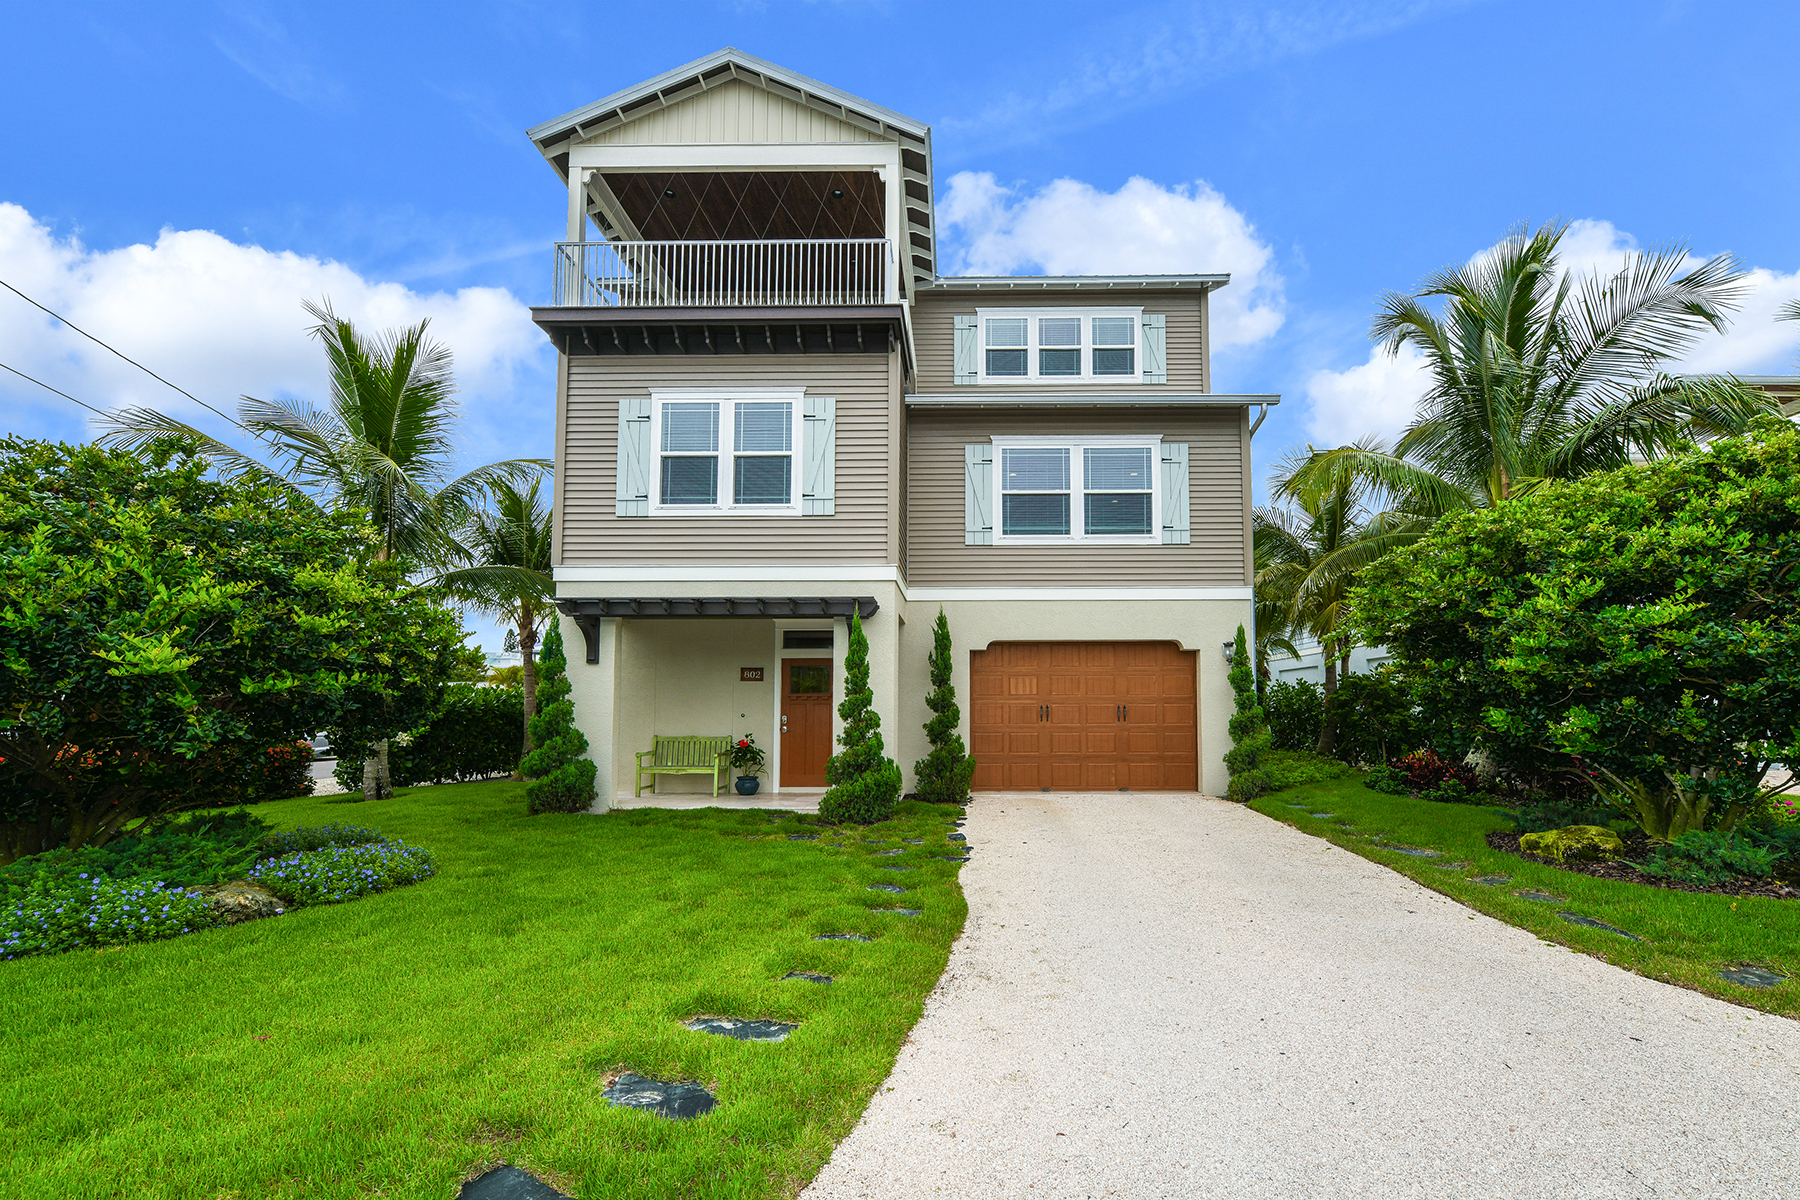 Single Family Homes for Sale at ANNA MARIA 802 Jacaranda Rd Anna Maria, Florida 34216 United States